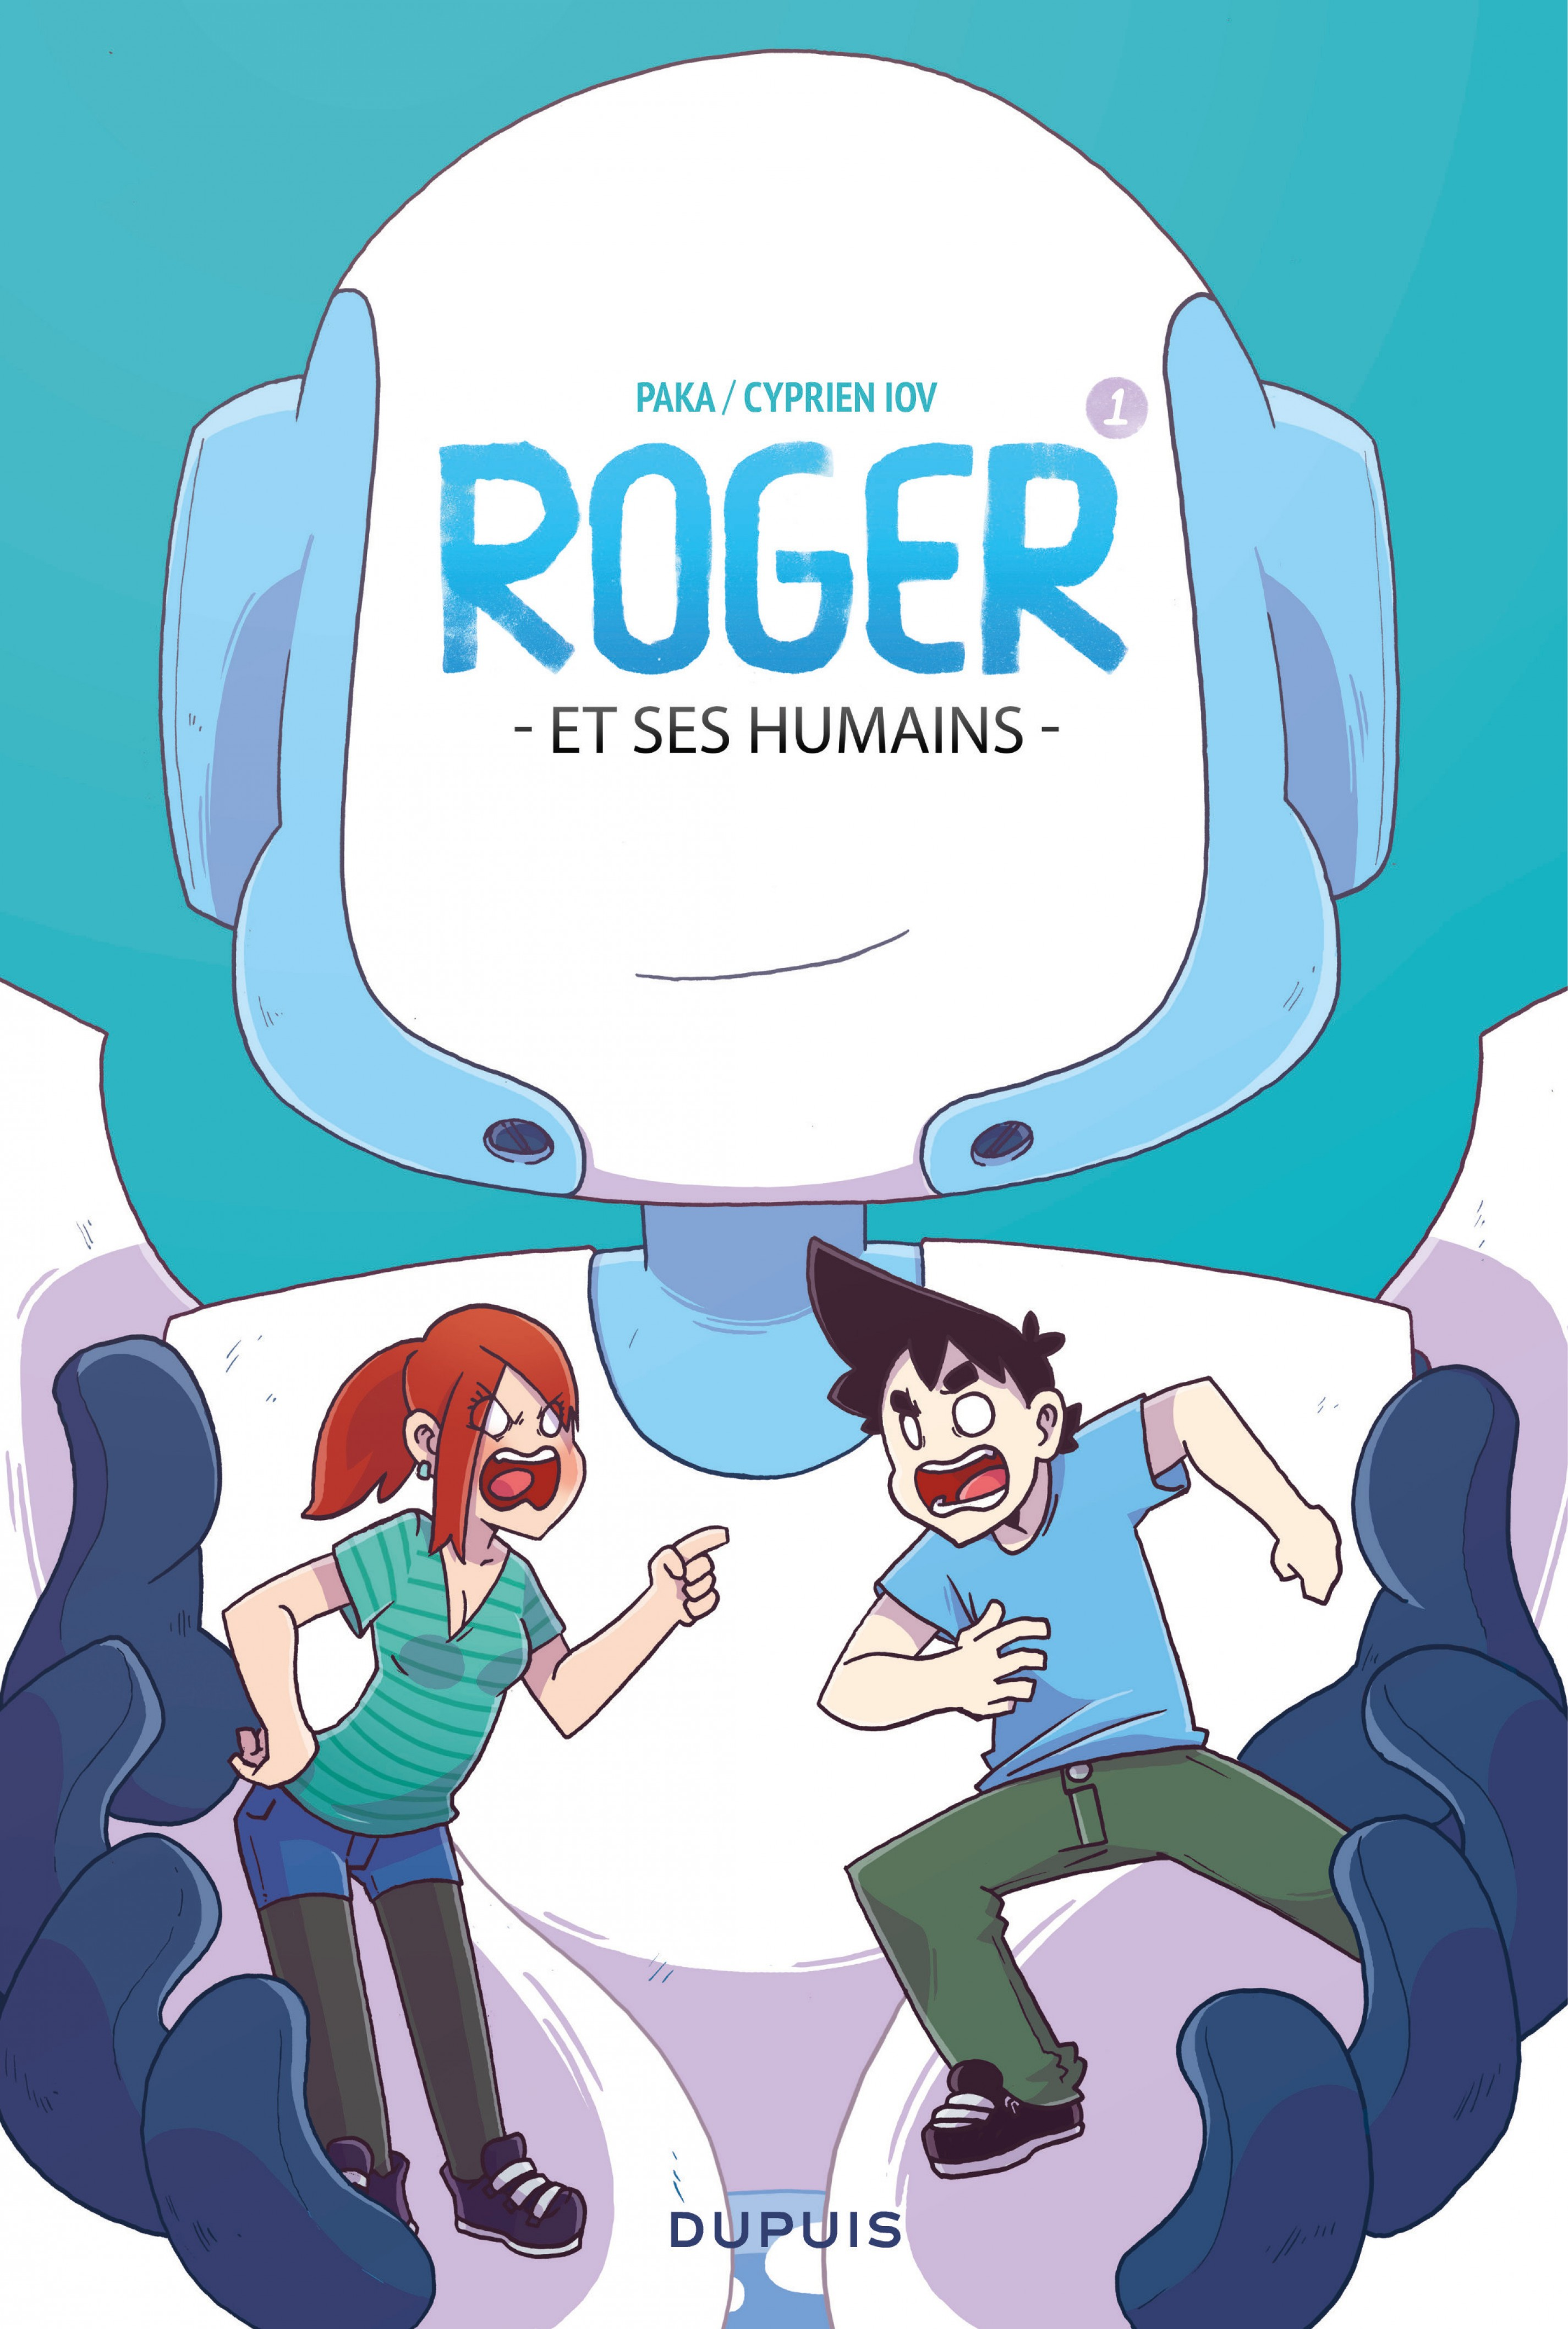 Roger et ses humains - Tome 1